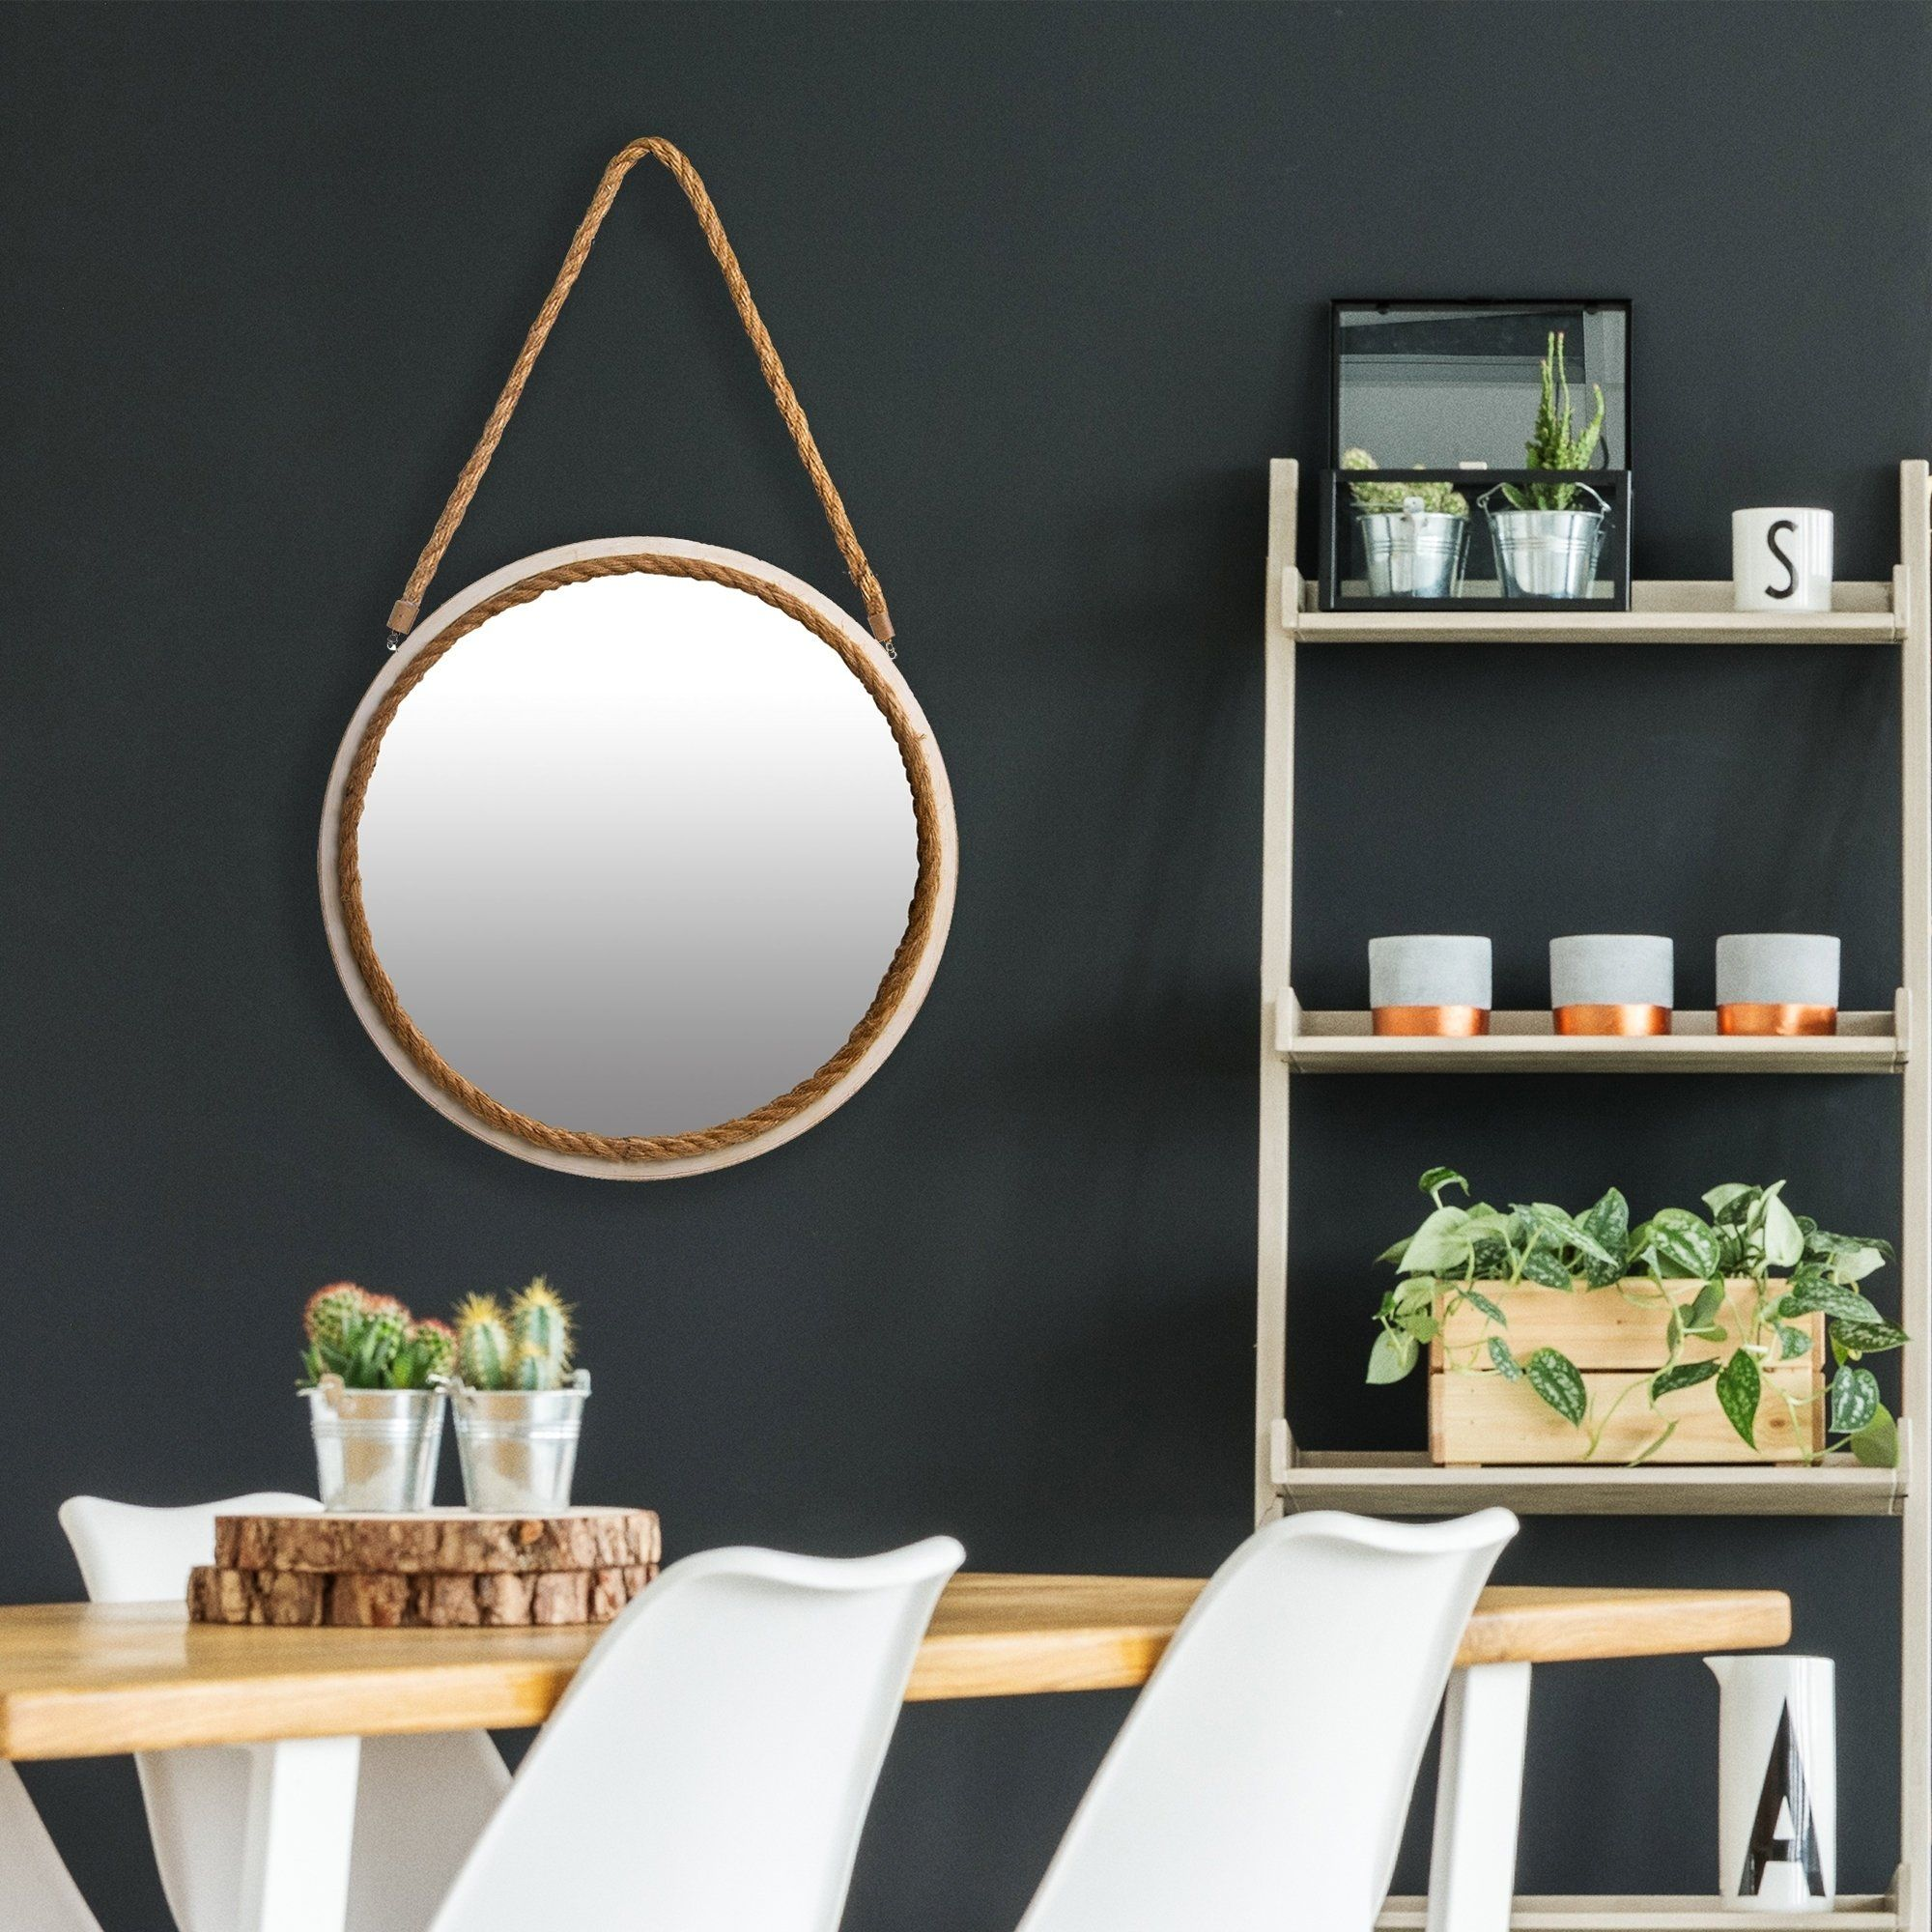 16 Inch Distressed Round Rope Wall Mirror White White Grey Wall Mirrors Rustic Wall Mirrors White Wall Mirrors